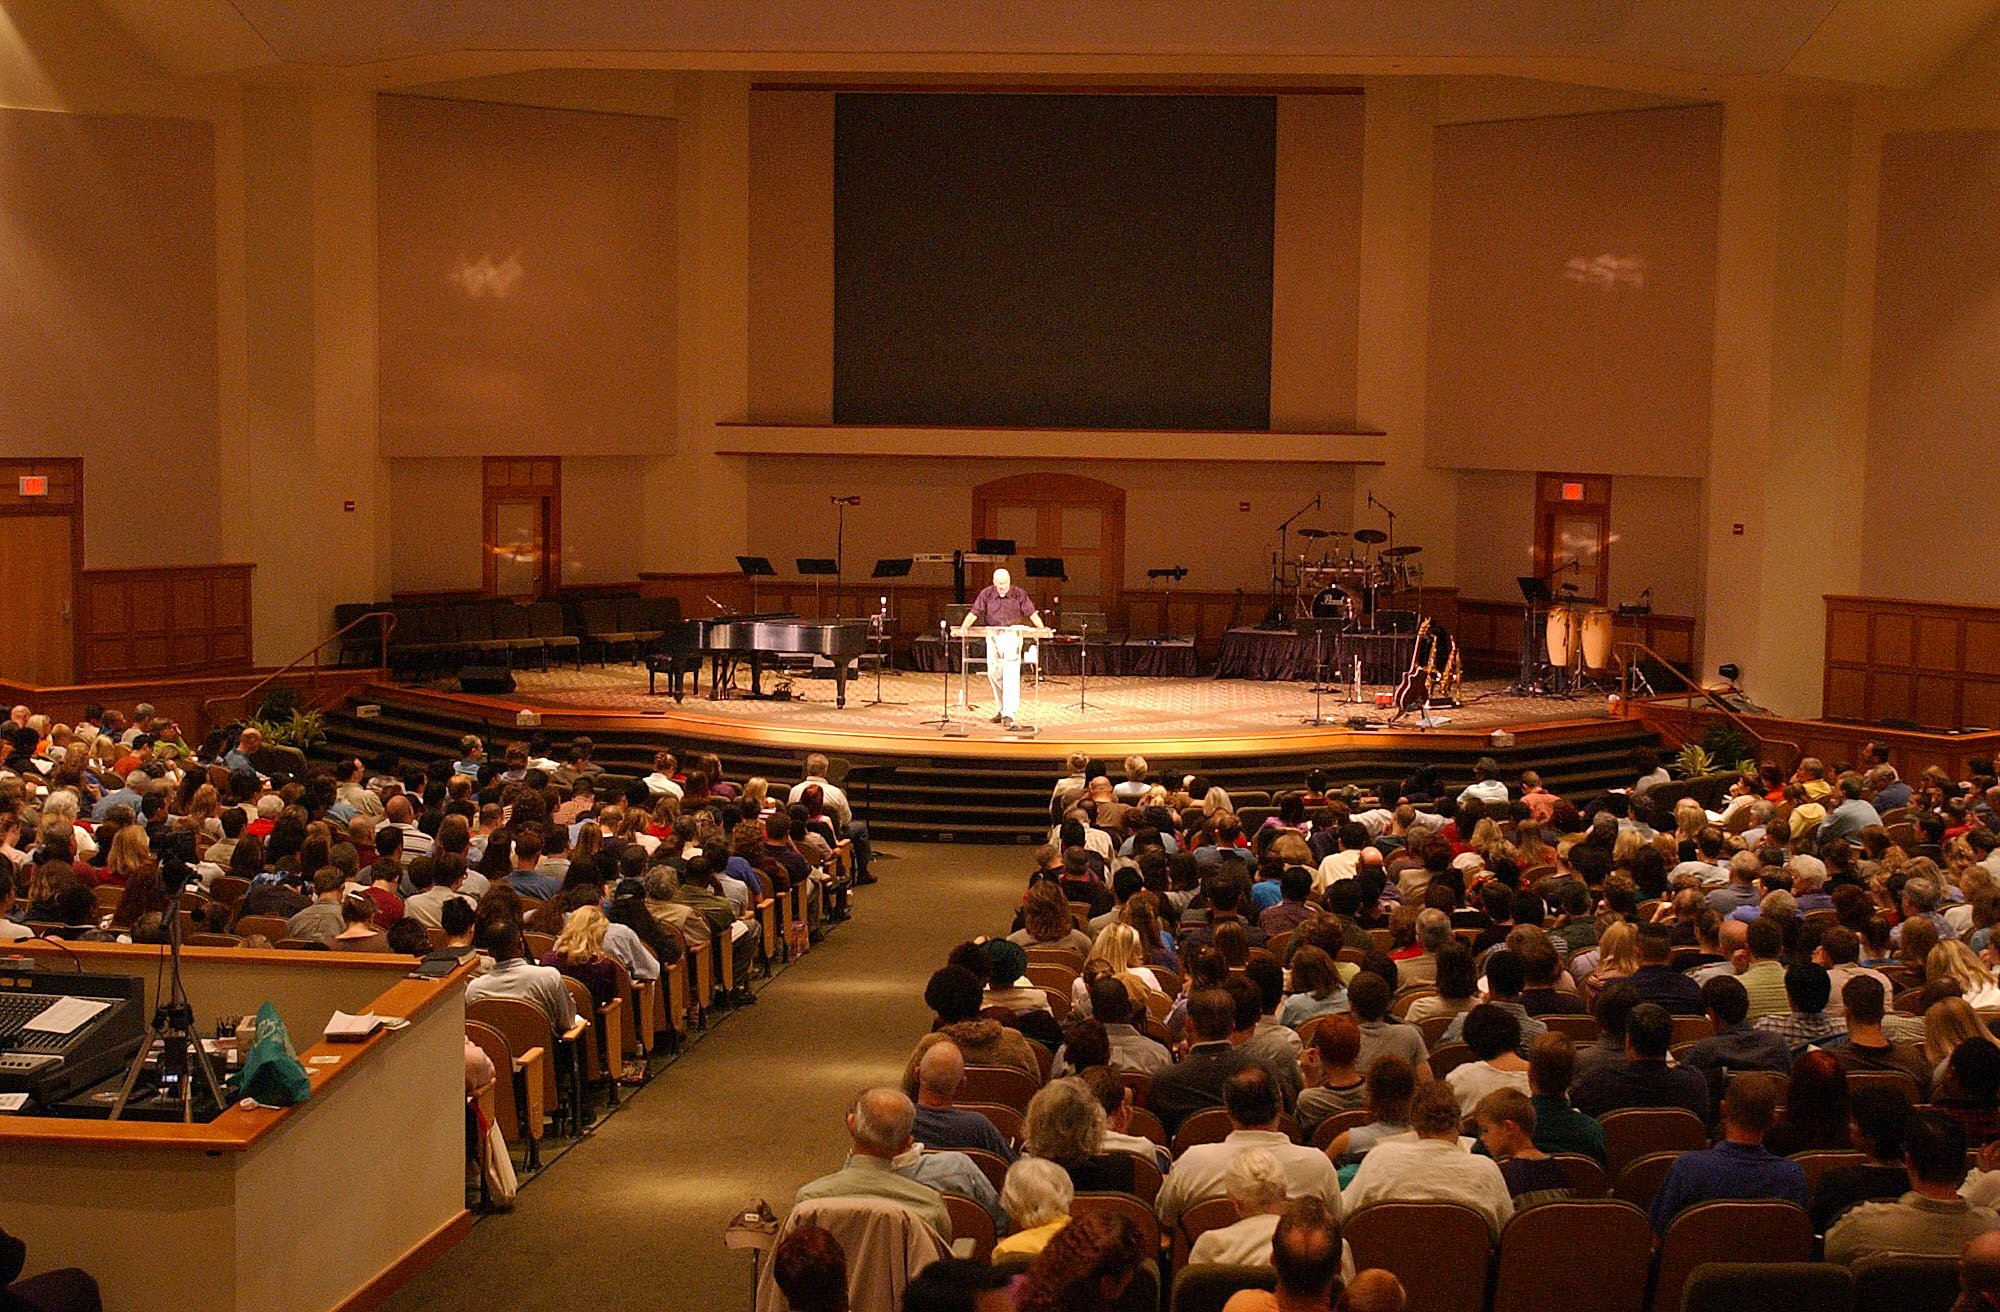 Worshipers fill the Covenant Life Church in Gaithersburg, Md. on Oct. 13, 2002.